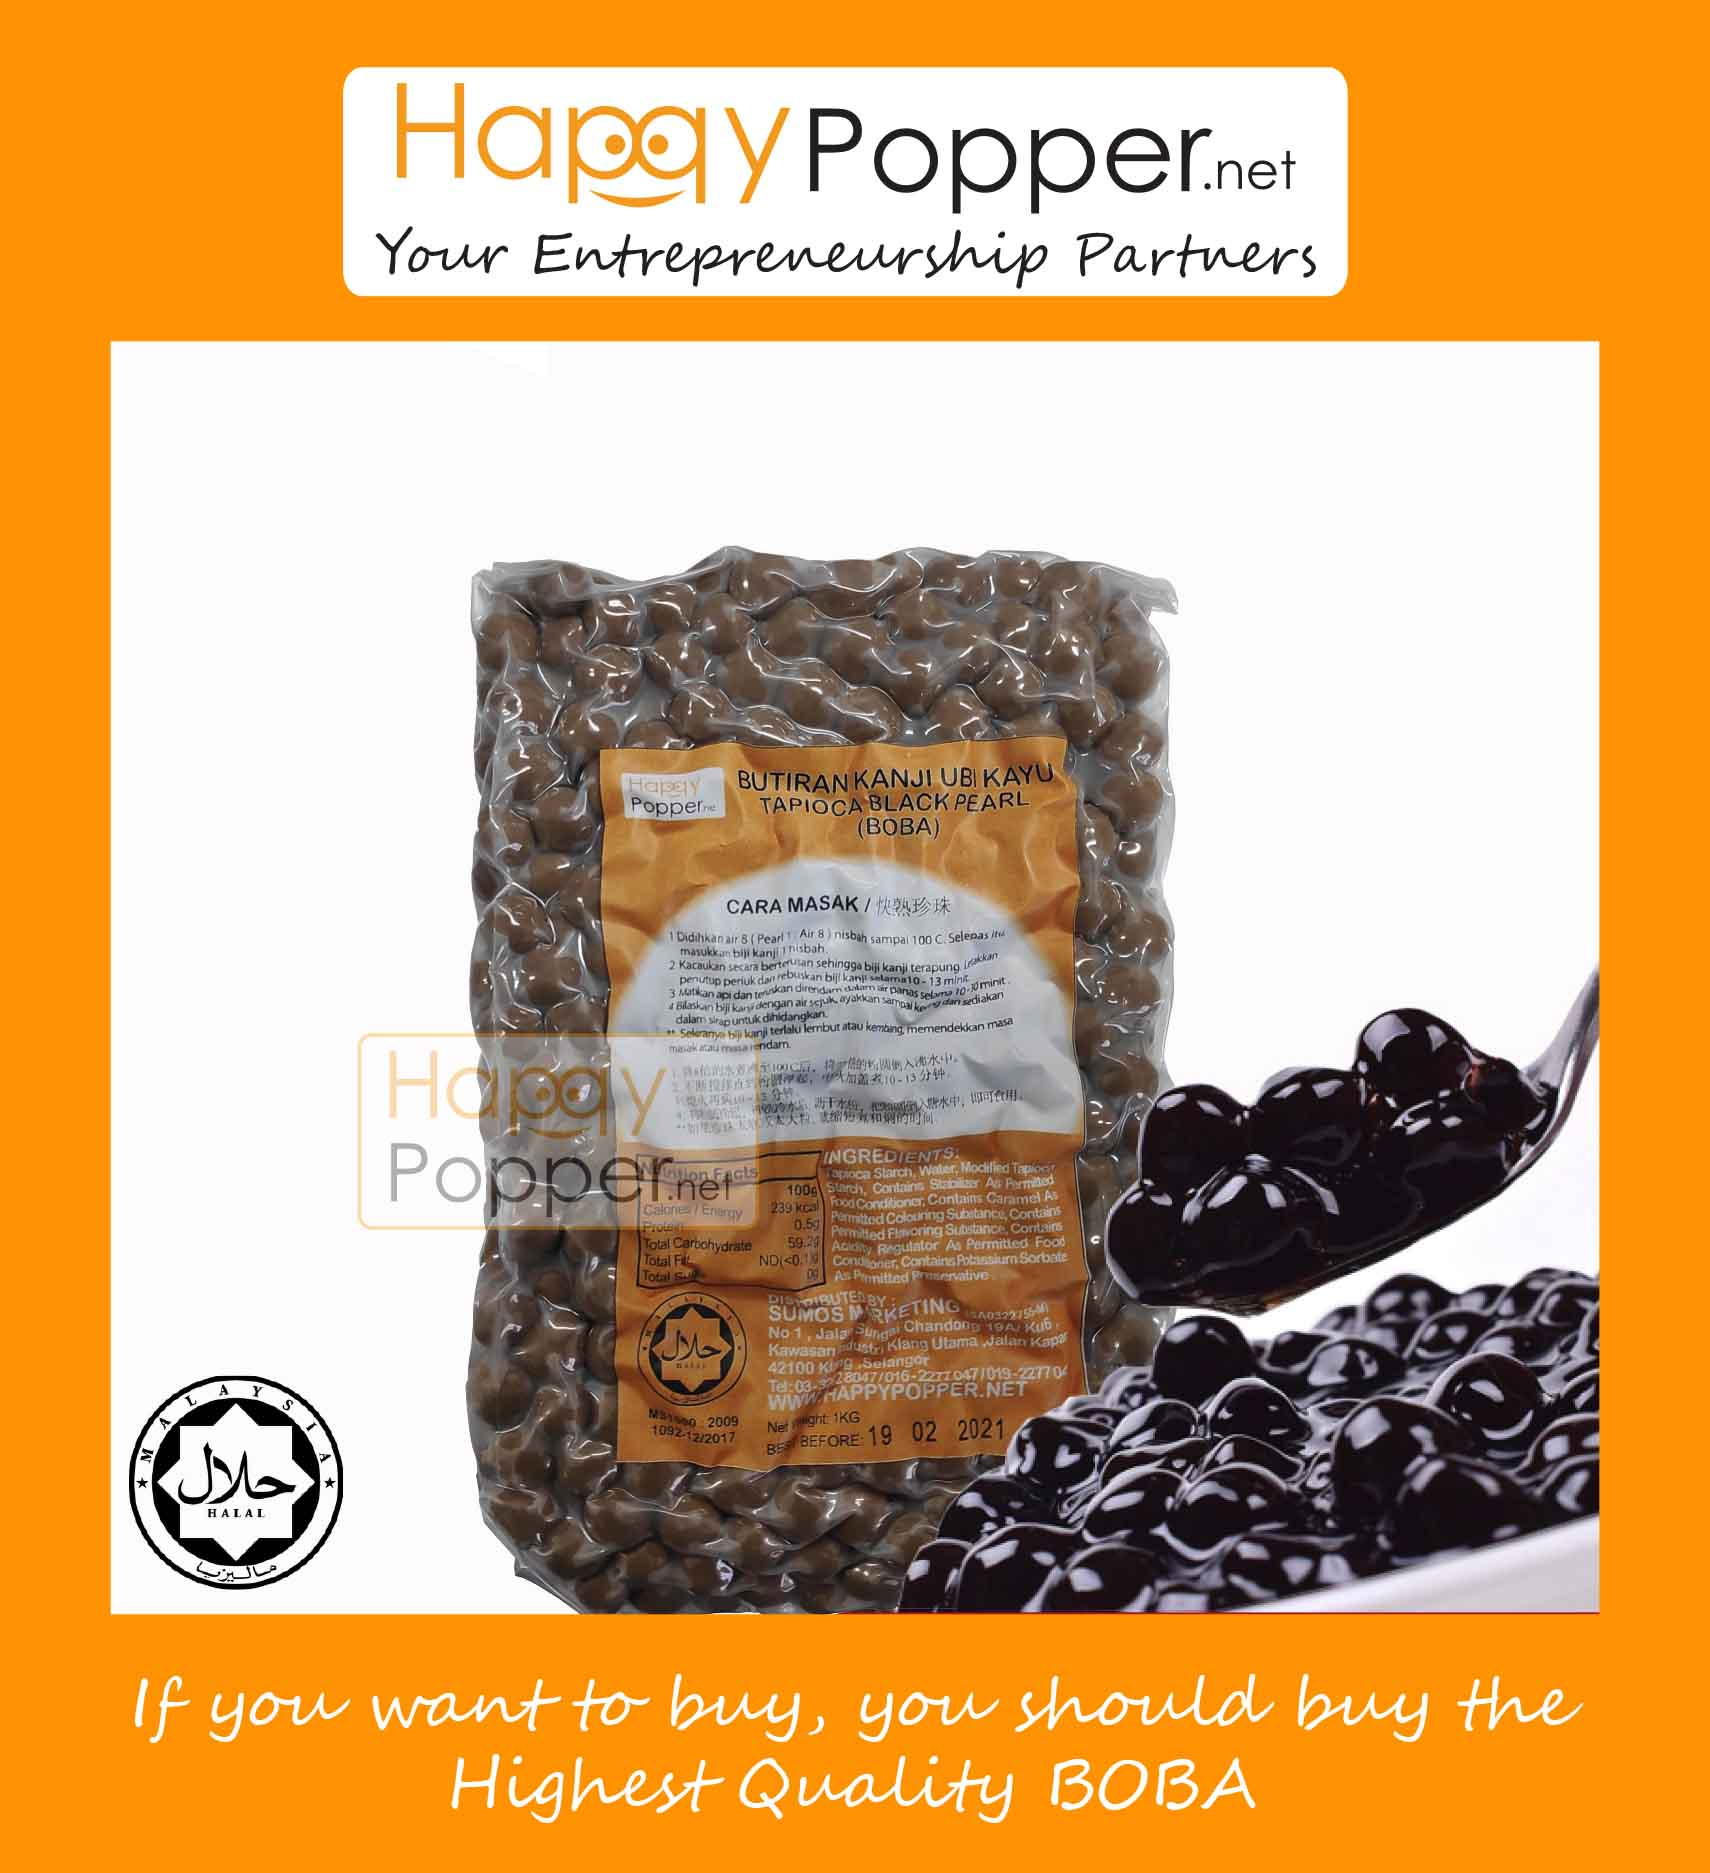 HAPPYPOPPER-BOBA TAPIOCA STARCH BALLS BLACK PEARL 1 KG